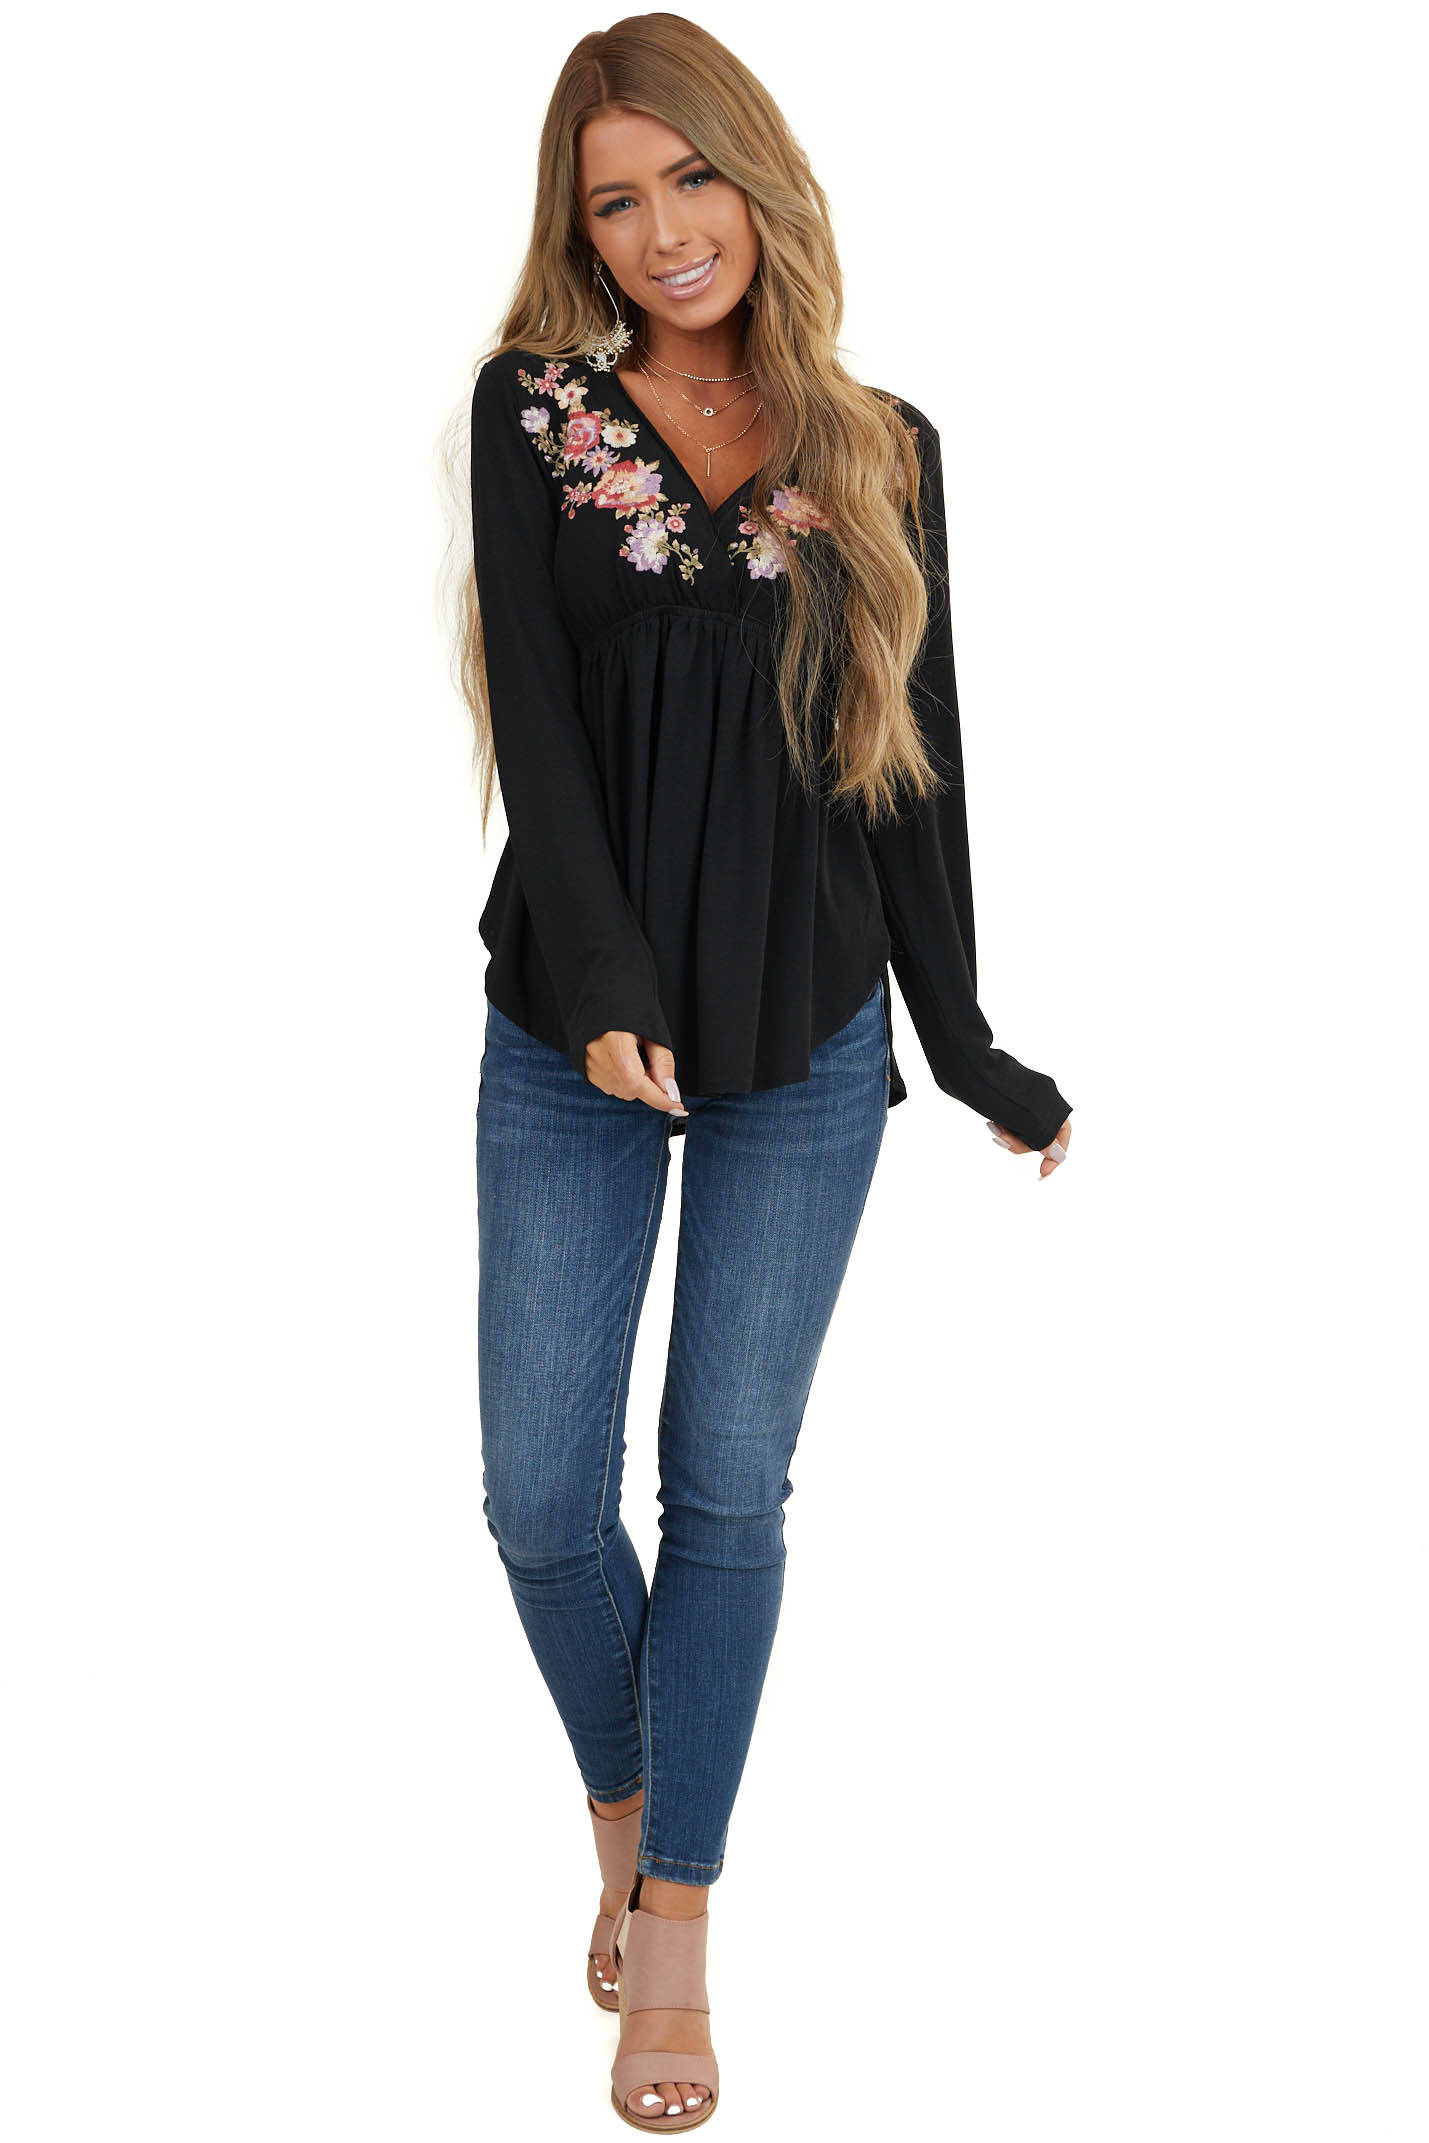 Black Babydoll Long Sleeve Top with Floral Embroidery Detail